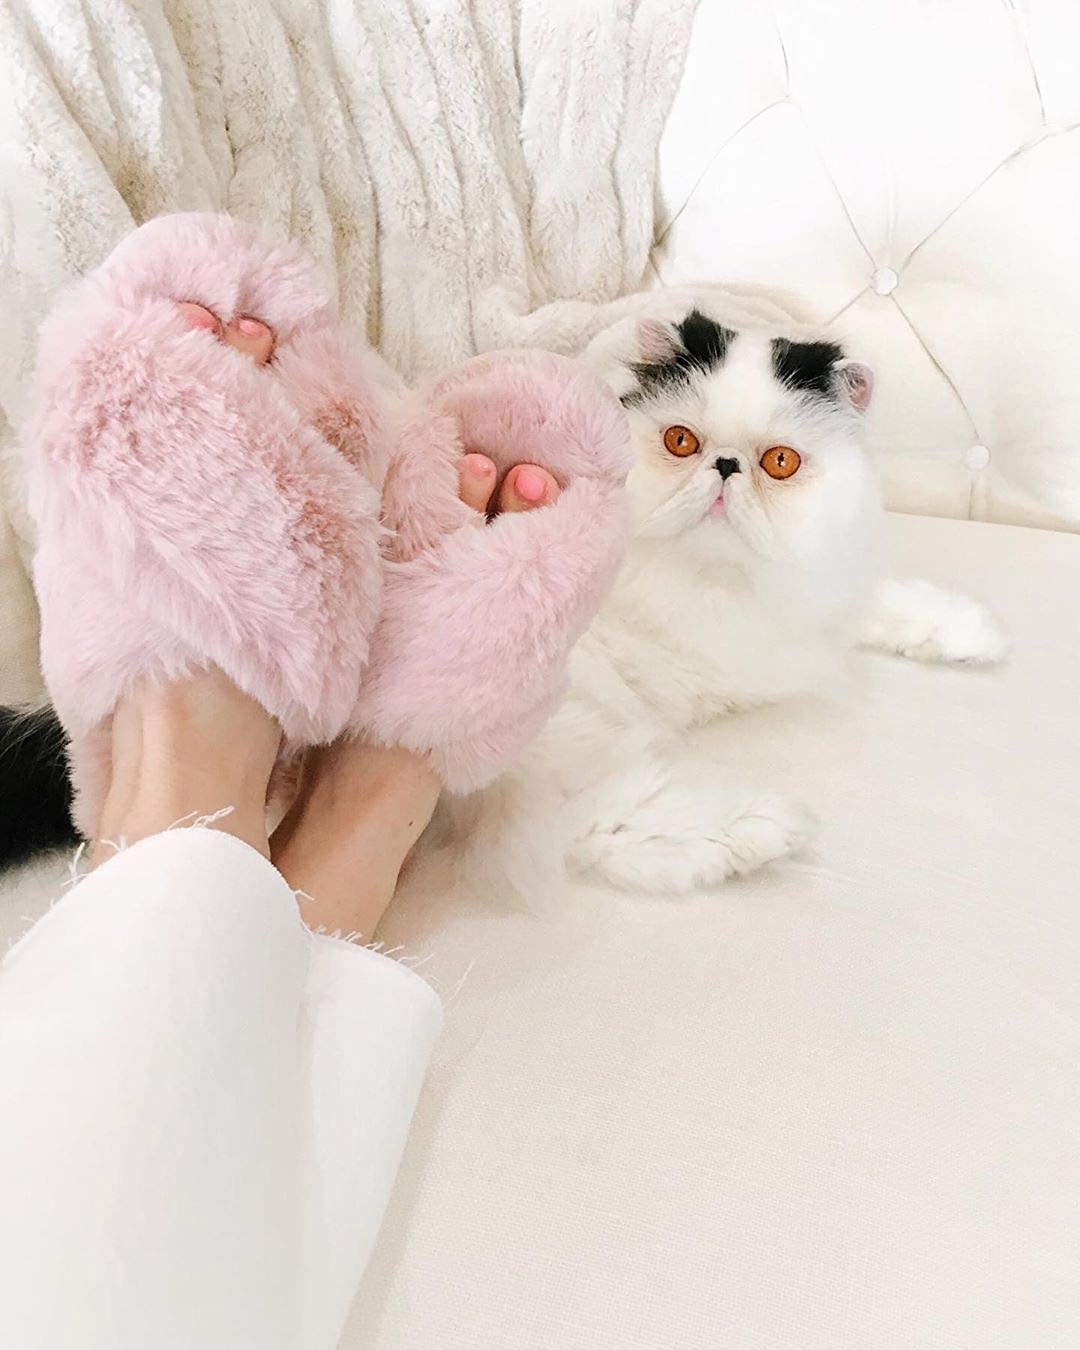 Womens Fuzzy House Slippers Cross Band Cozy Plush Fleece Indoor Outdoor Slippers Memory Foam Bedroom Slippers Shoes Open Toe Fluffy Slippers